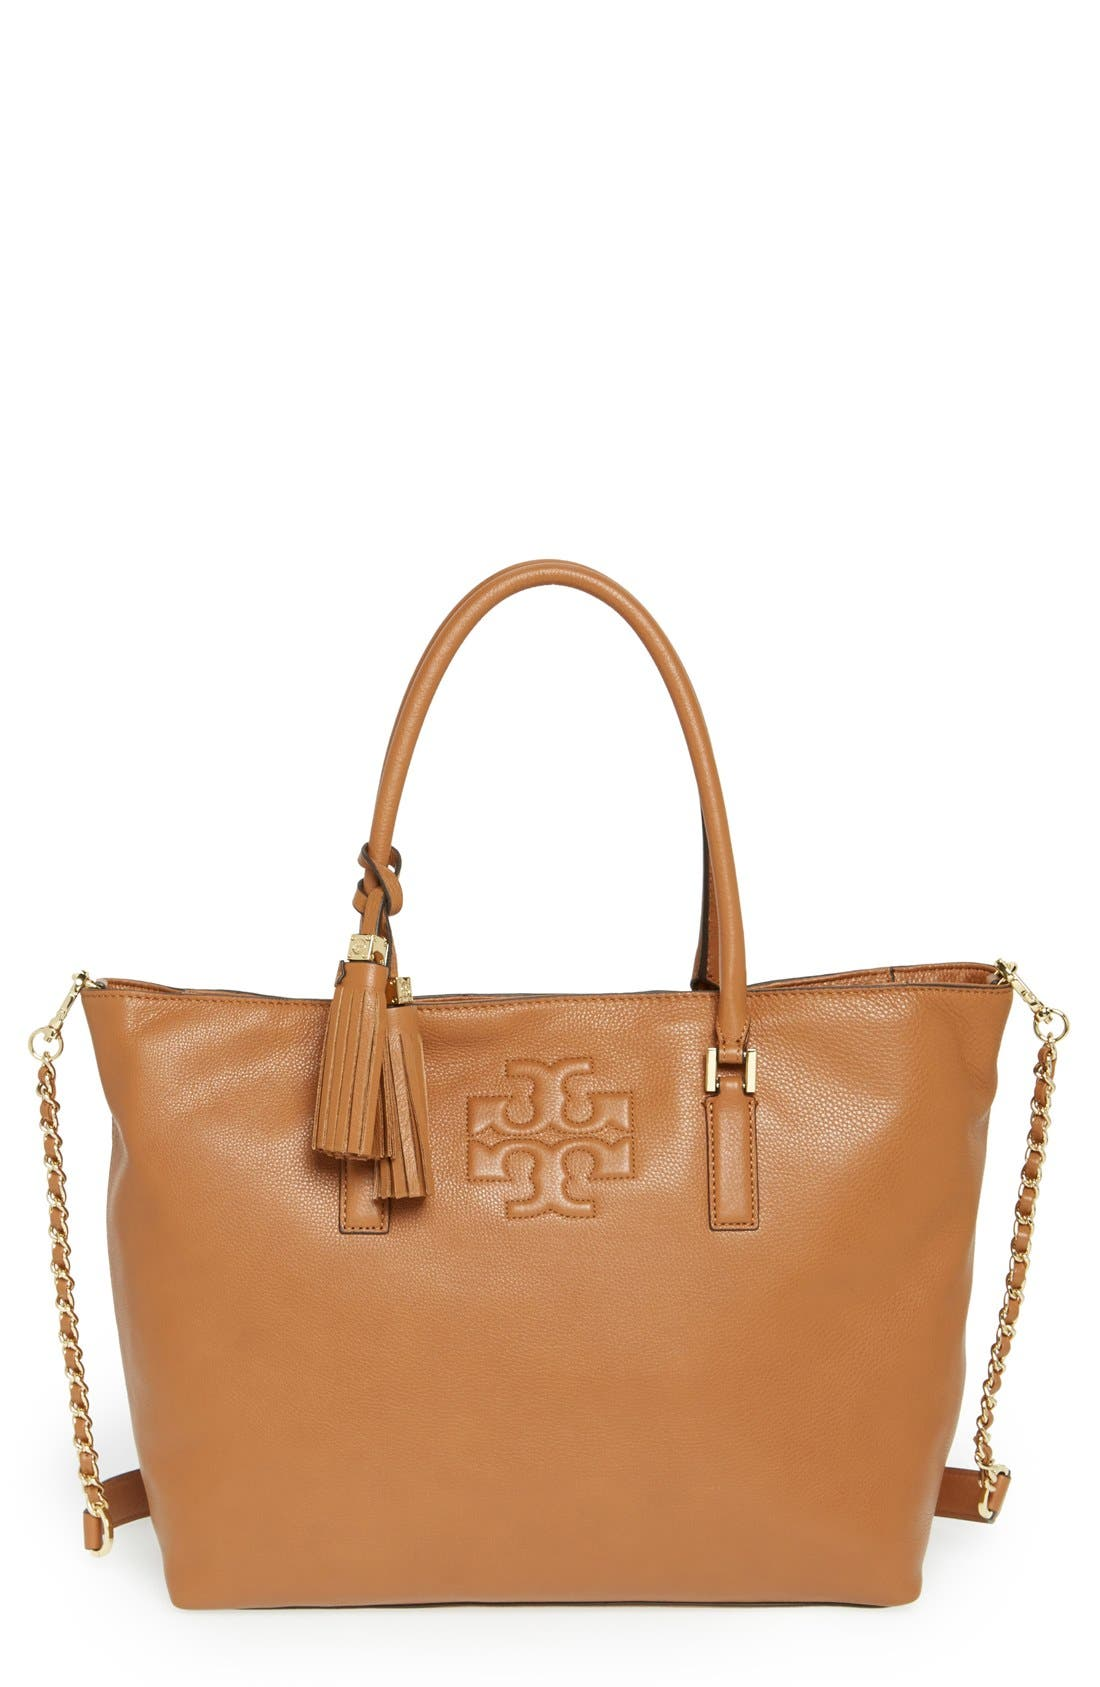 Alternate Image 1 Selected - Tory Burch 'Thea' Leather Tote